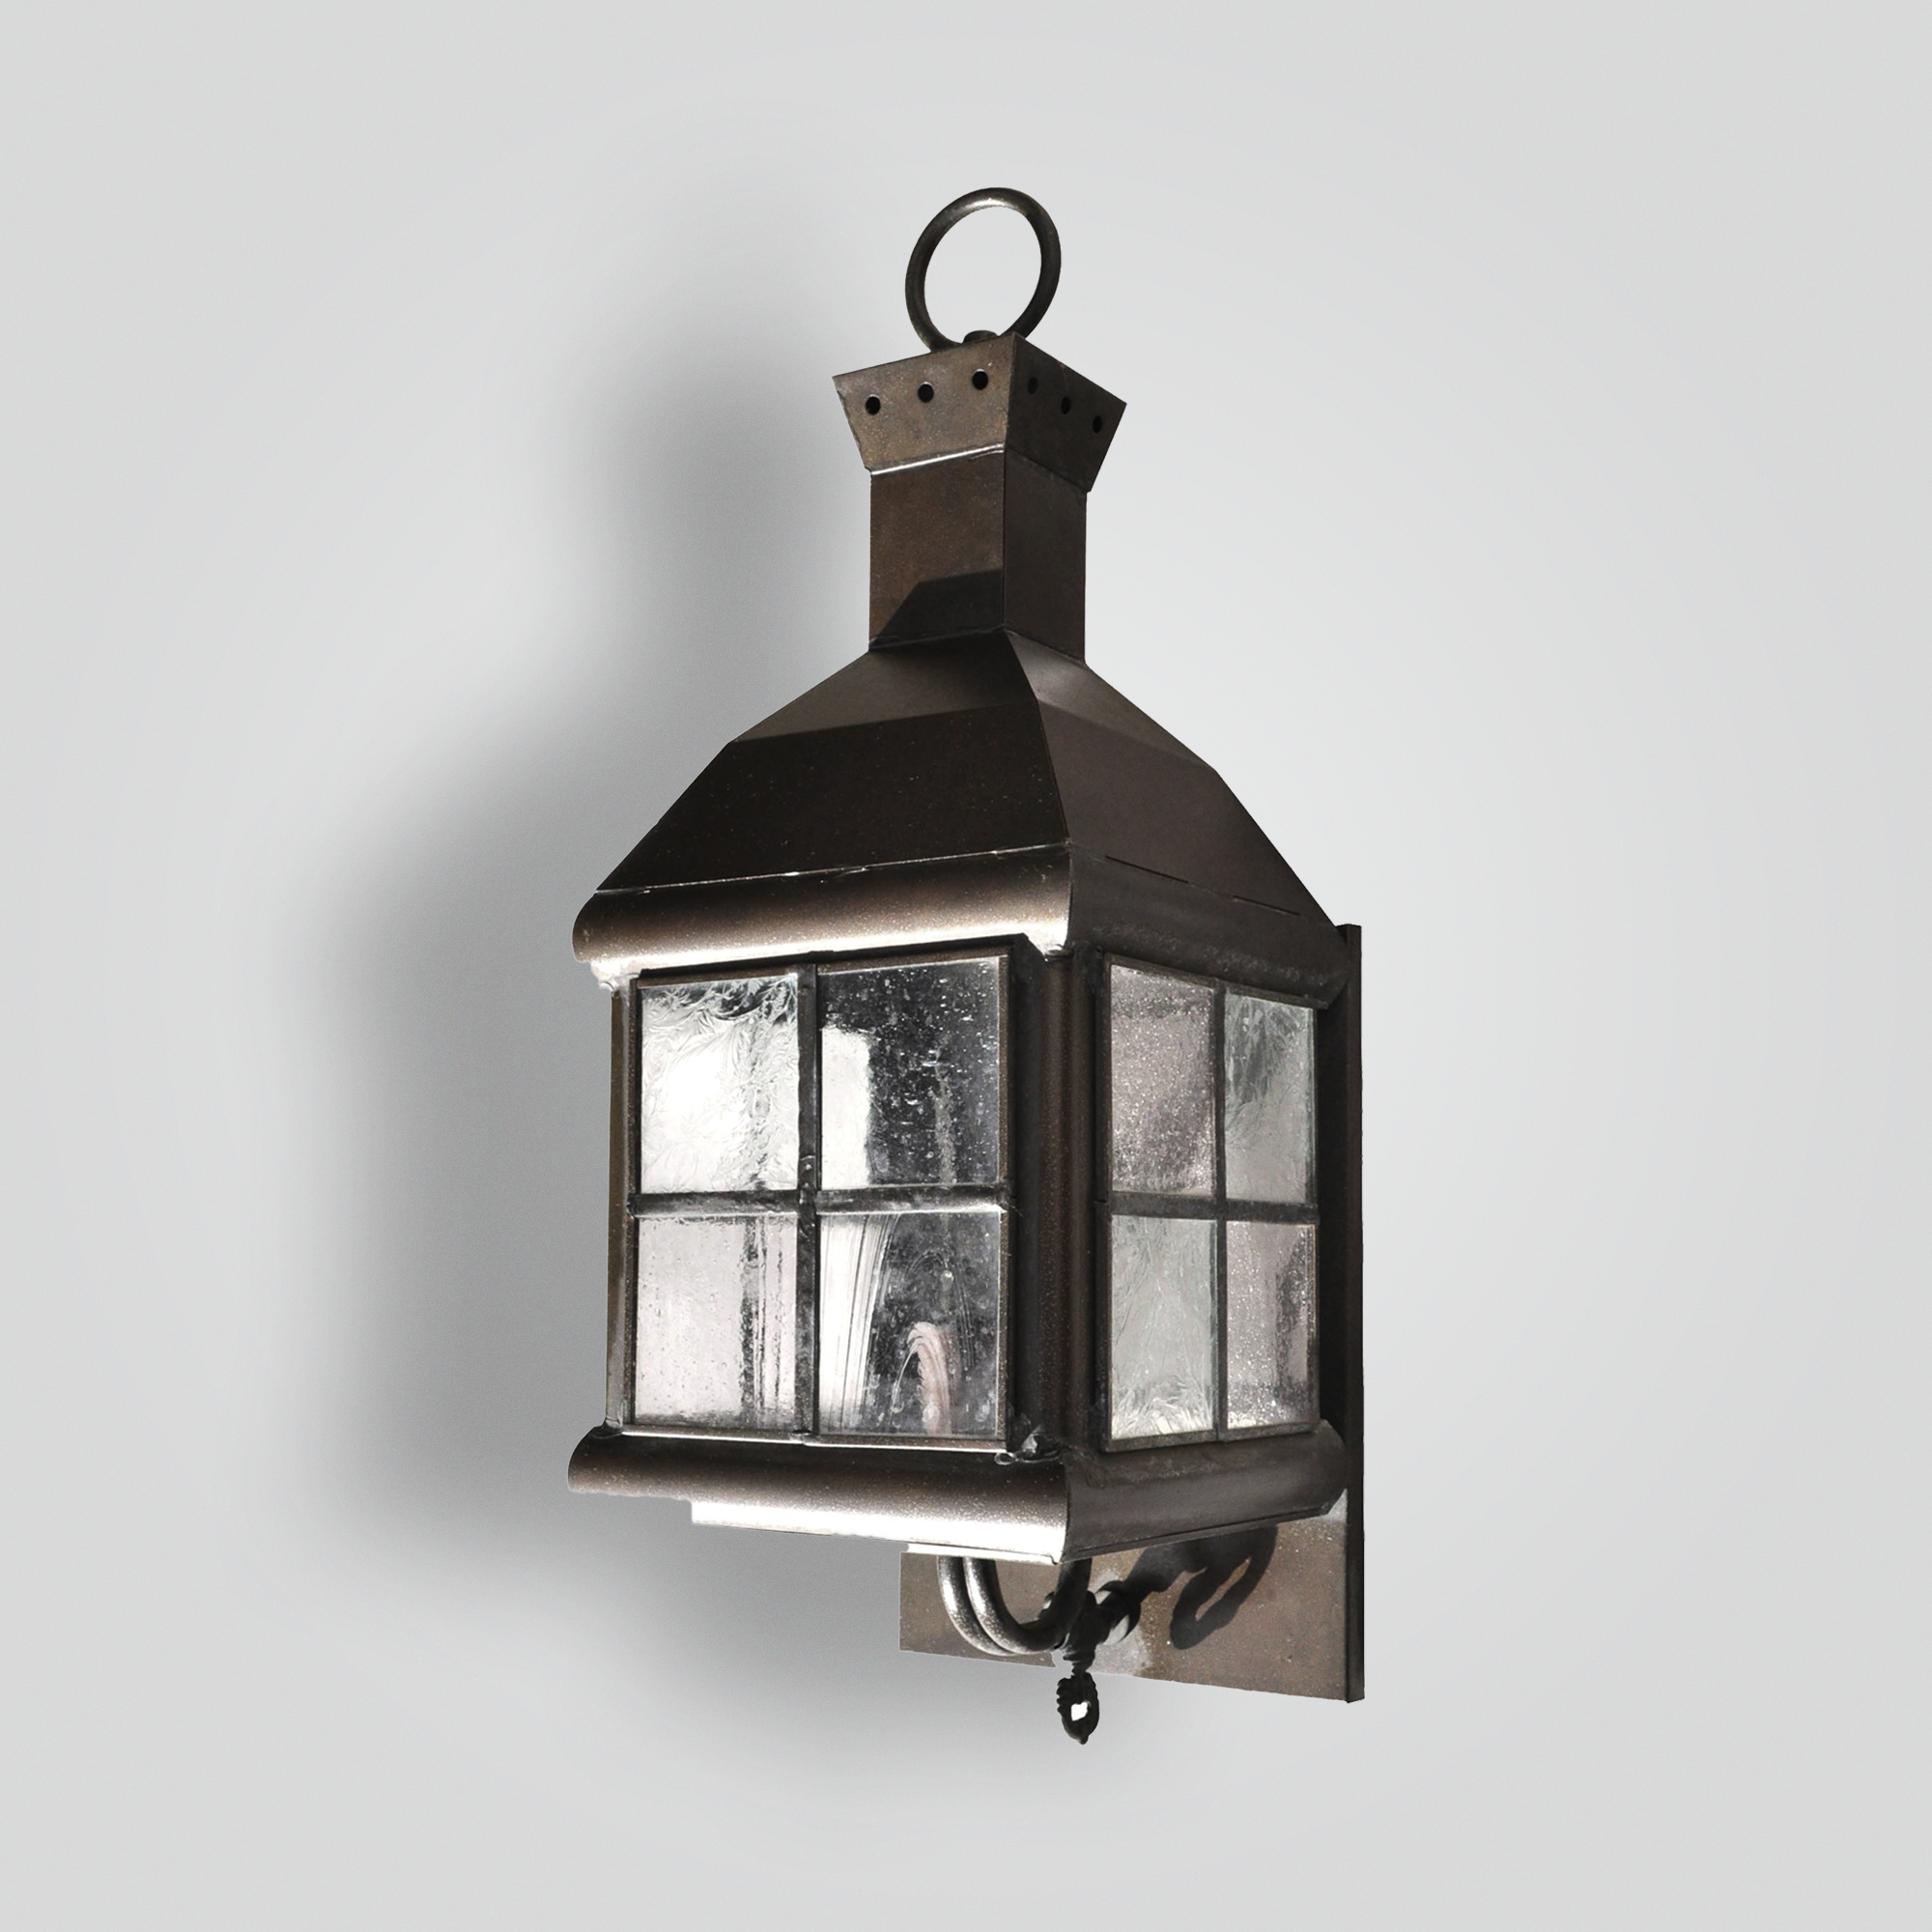 768-cb1-br-w-sh Cottage Wall Lantern With Leaded Glass – ADG Lighting Collection